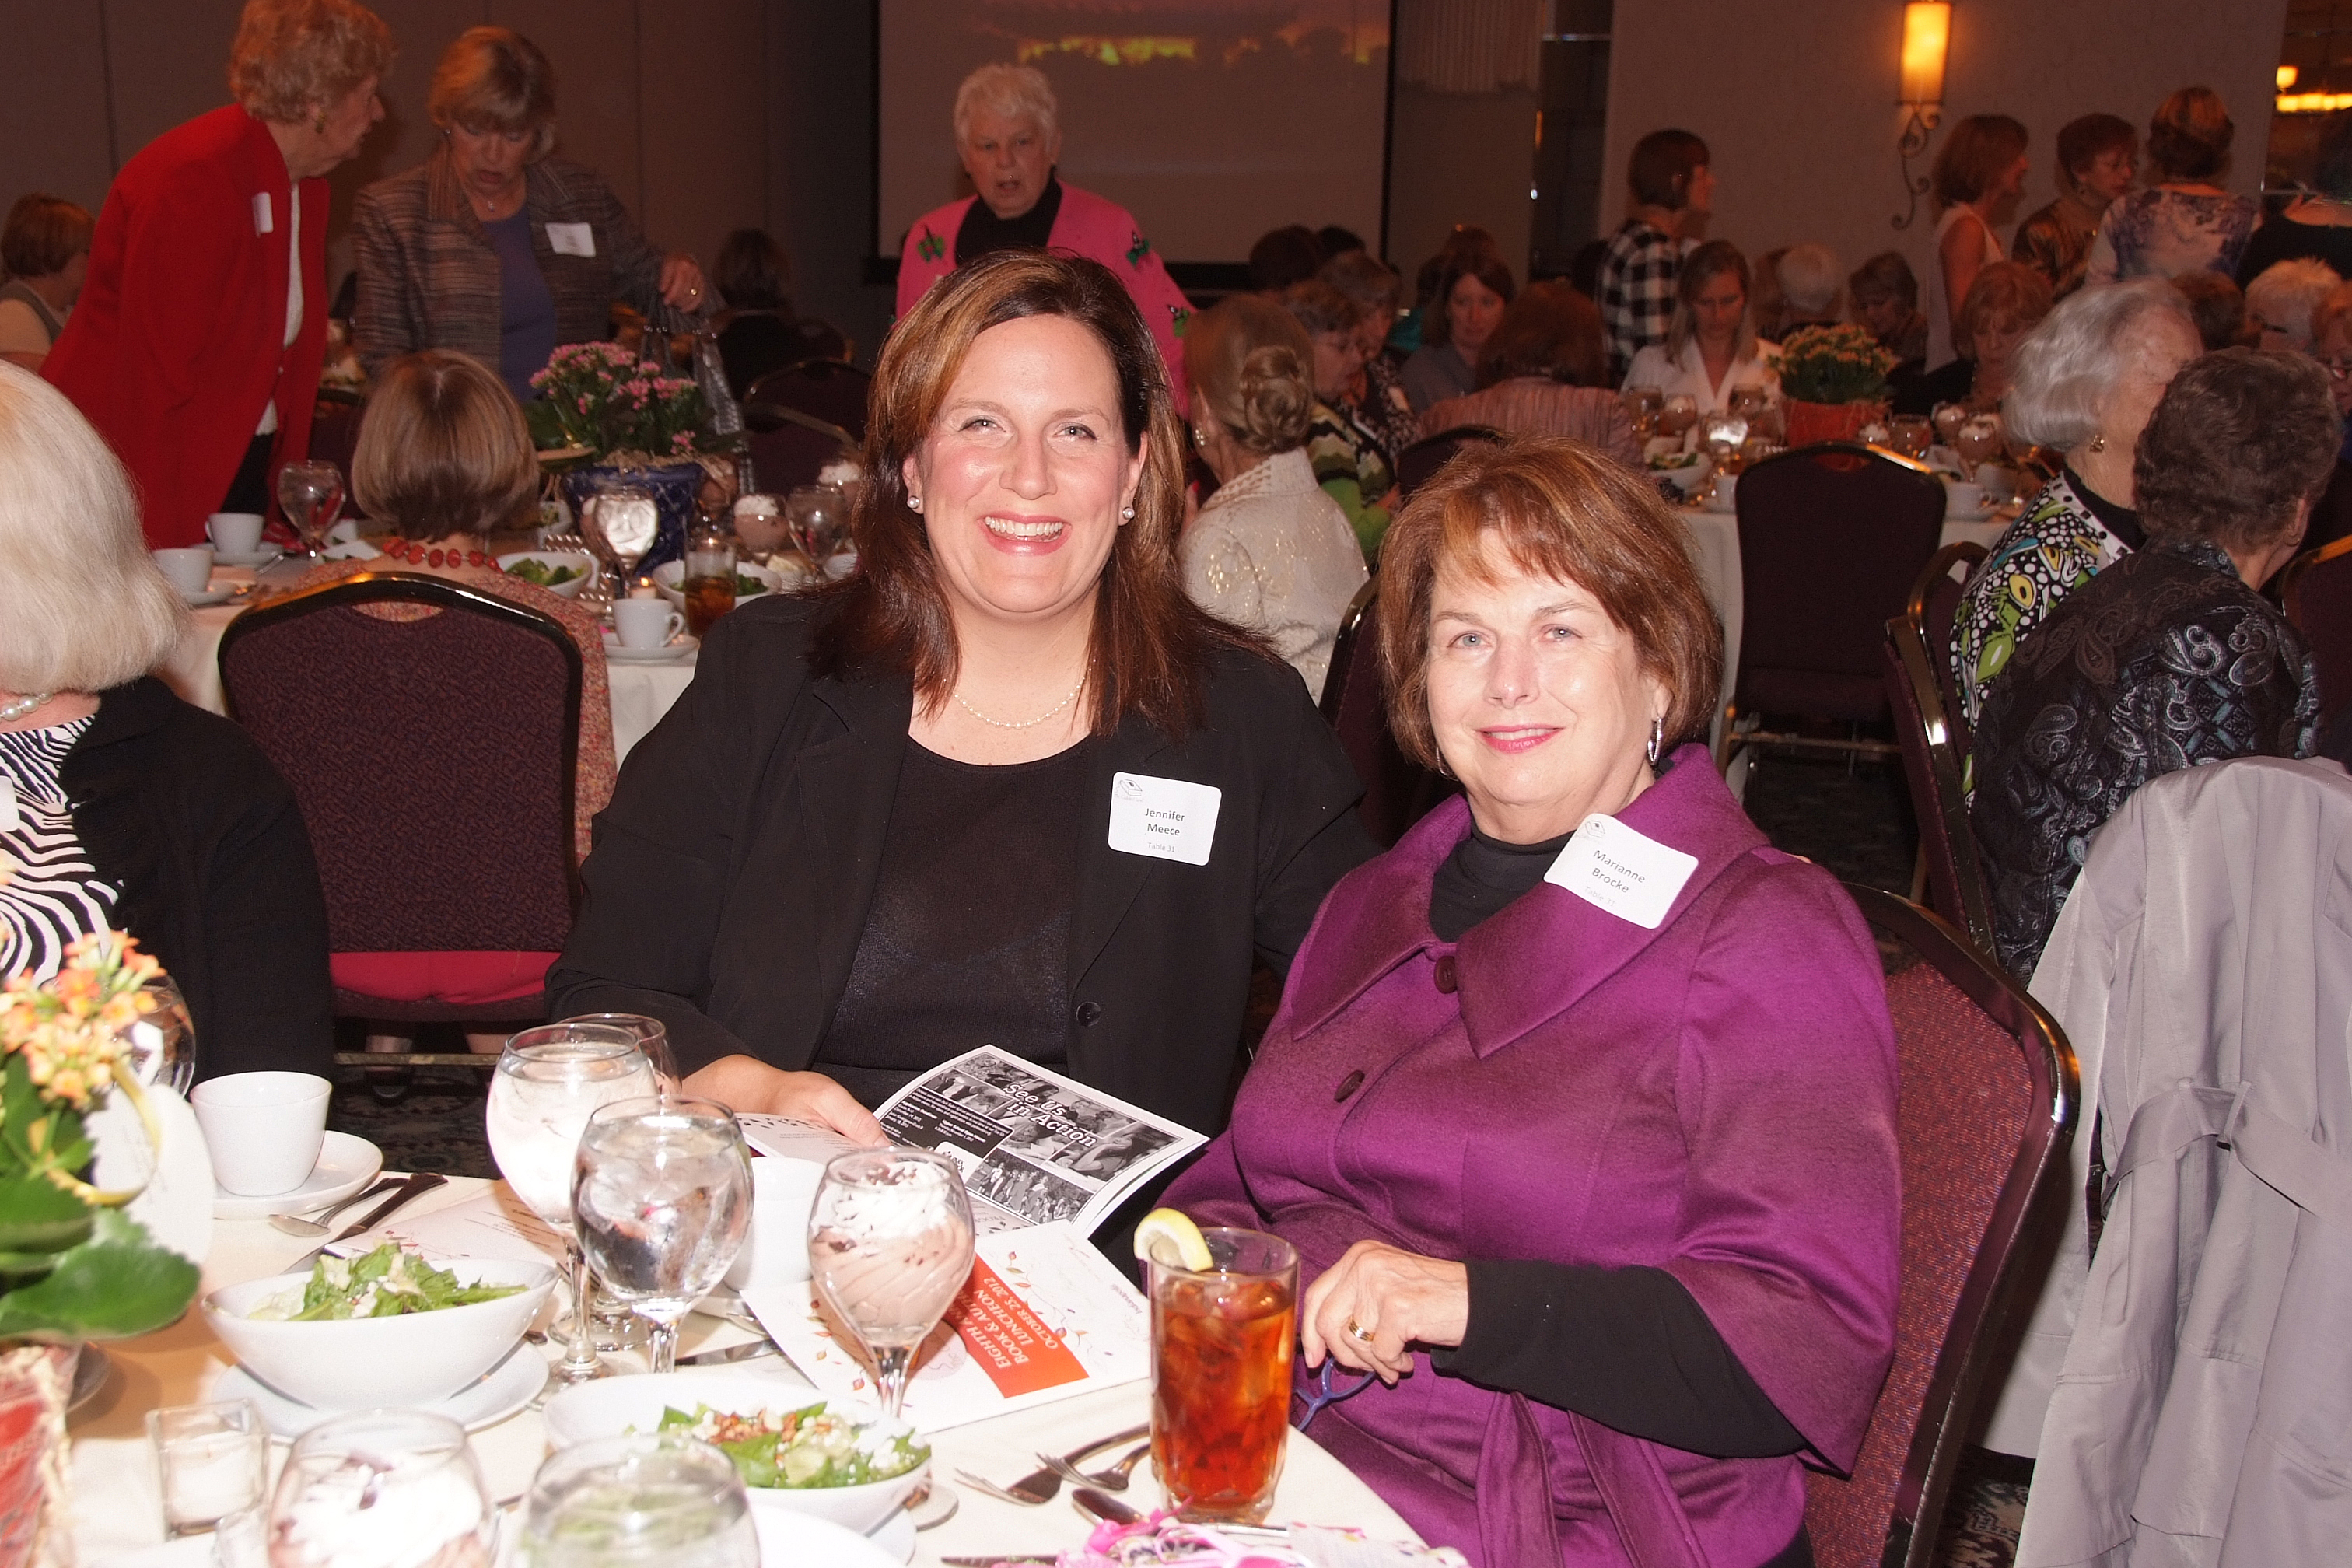 From left, Jennifer Meece and Marianne Brocke enjoyed the food and celebrities at a previous Guilded Leaf Book and Author Luncheon. (Submitted photo)